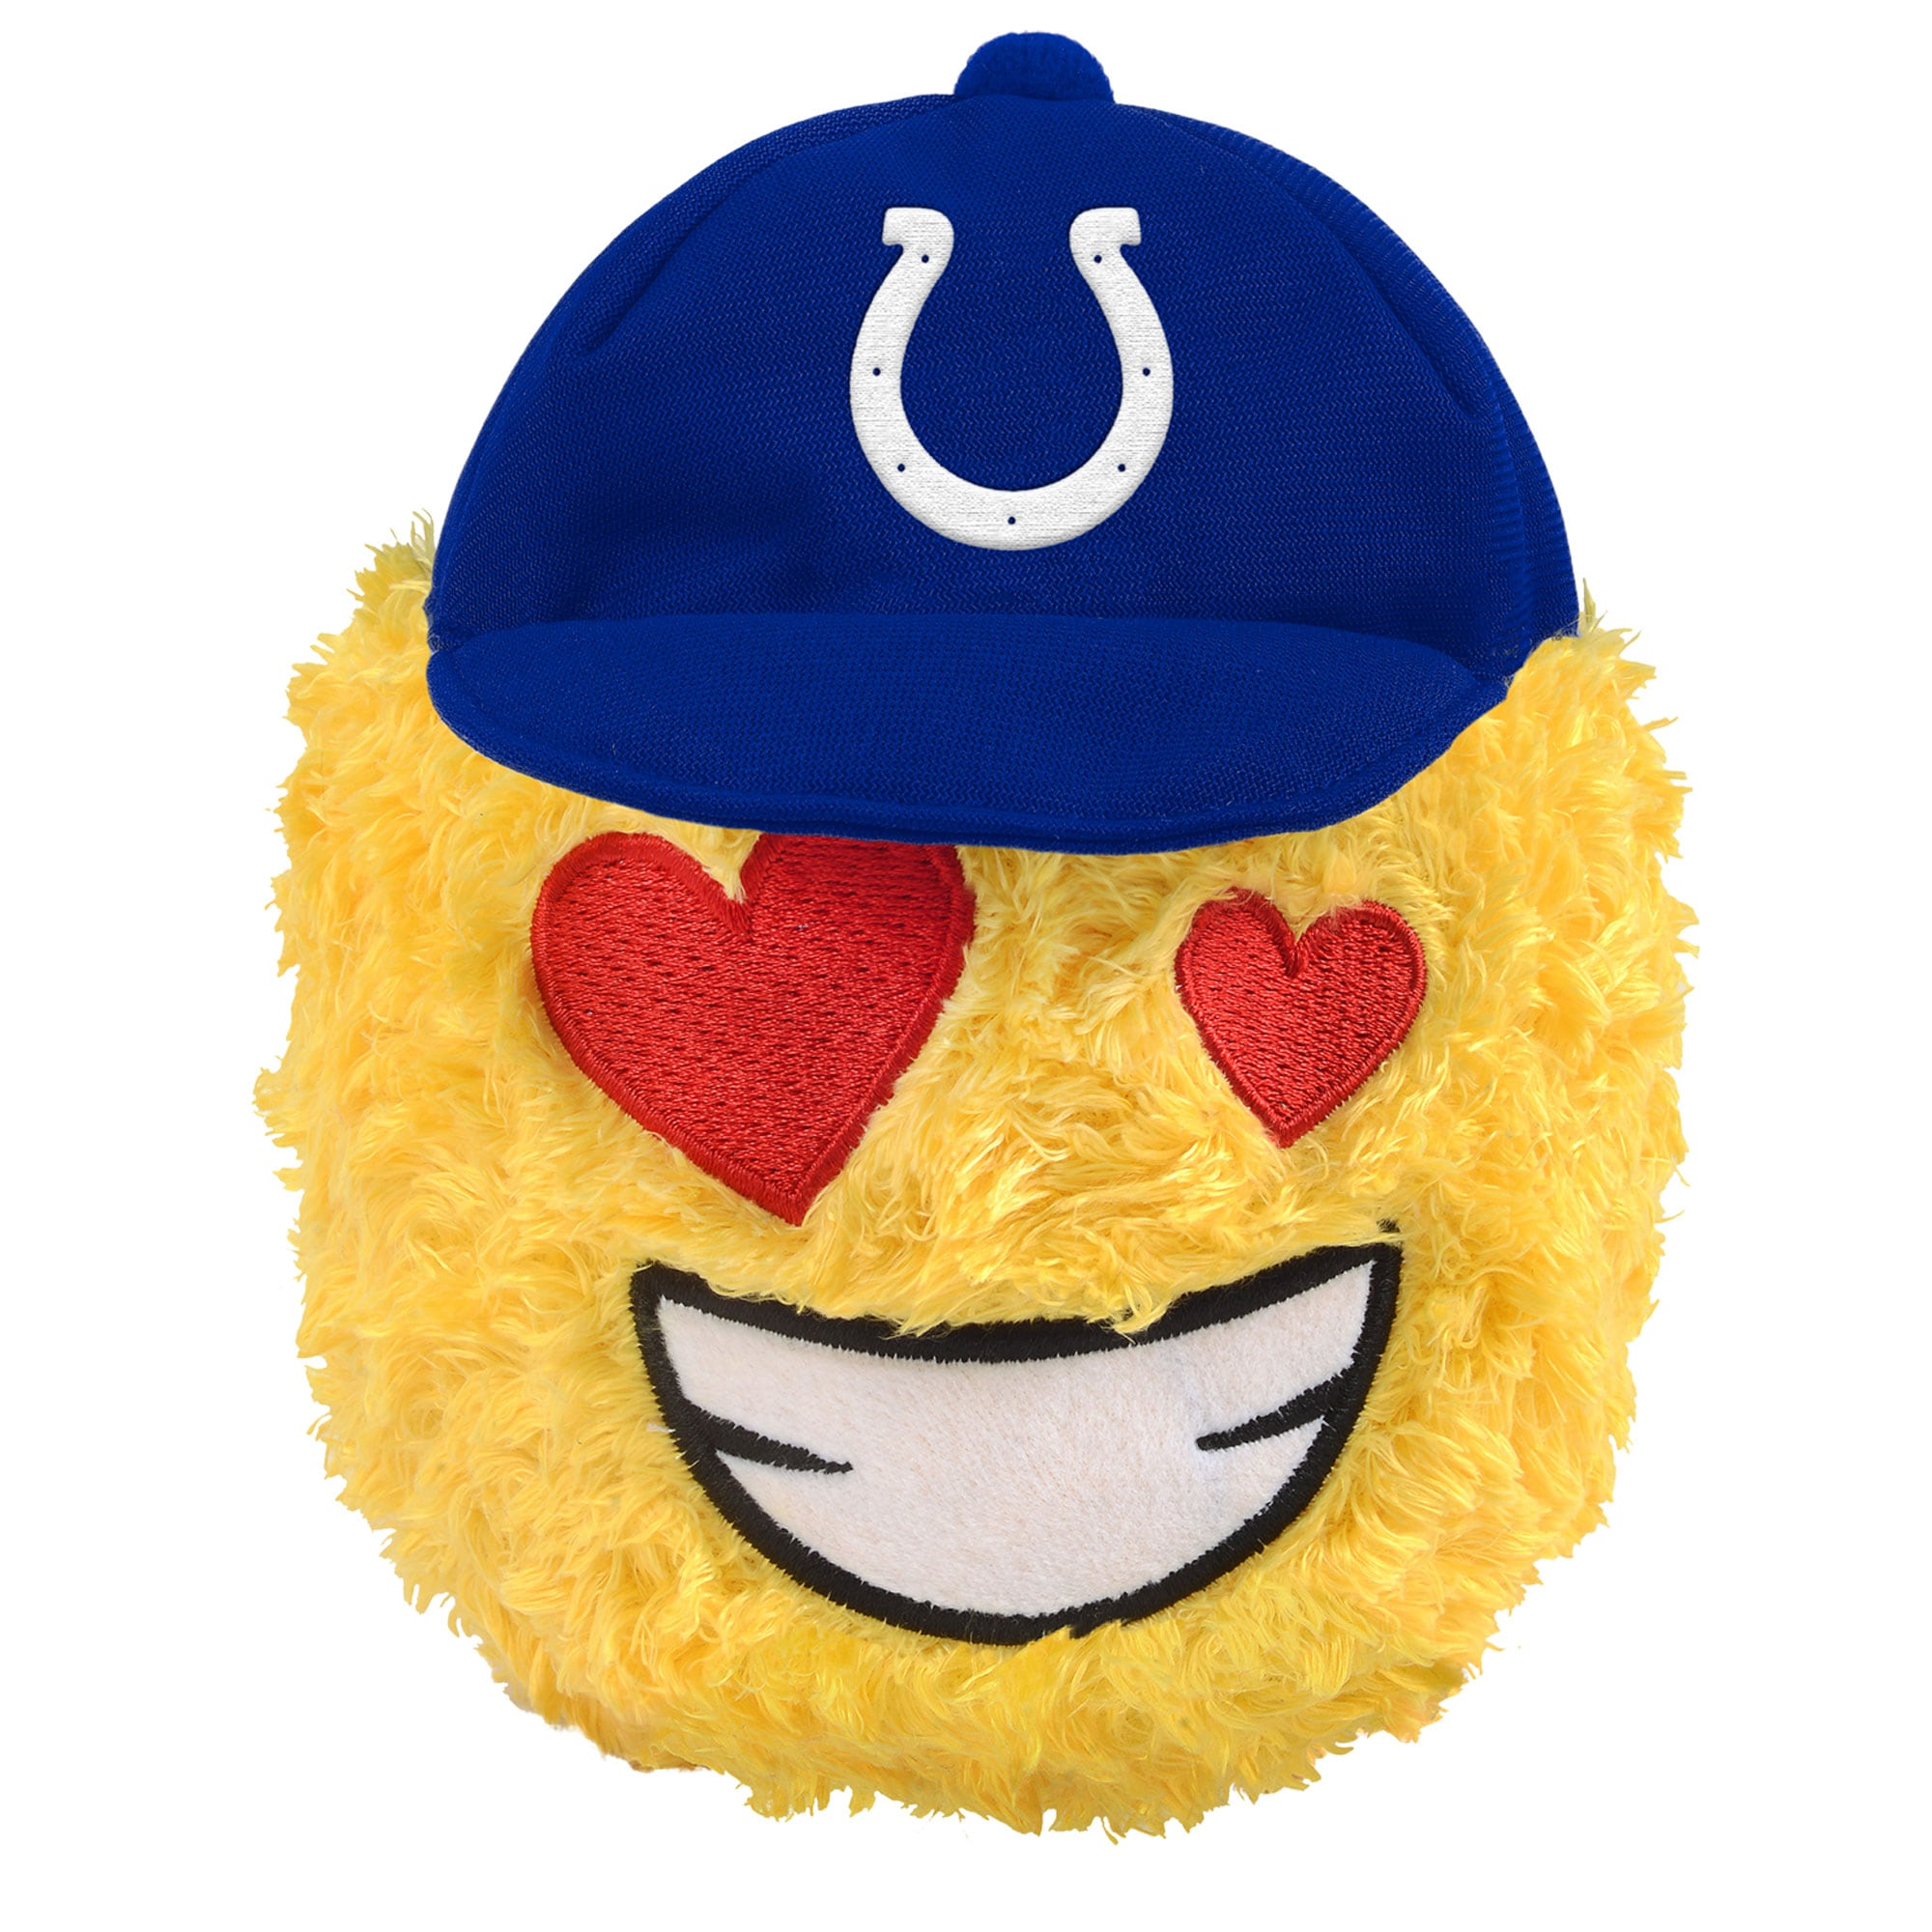 "Indianapolis Colts 5"" Heart Eyes Teamoji Plush Toy"